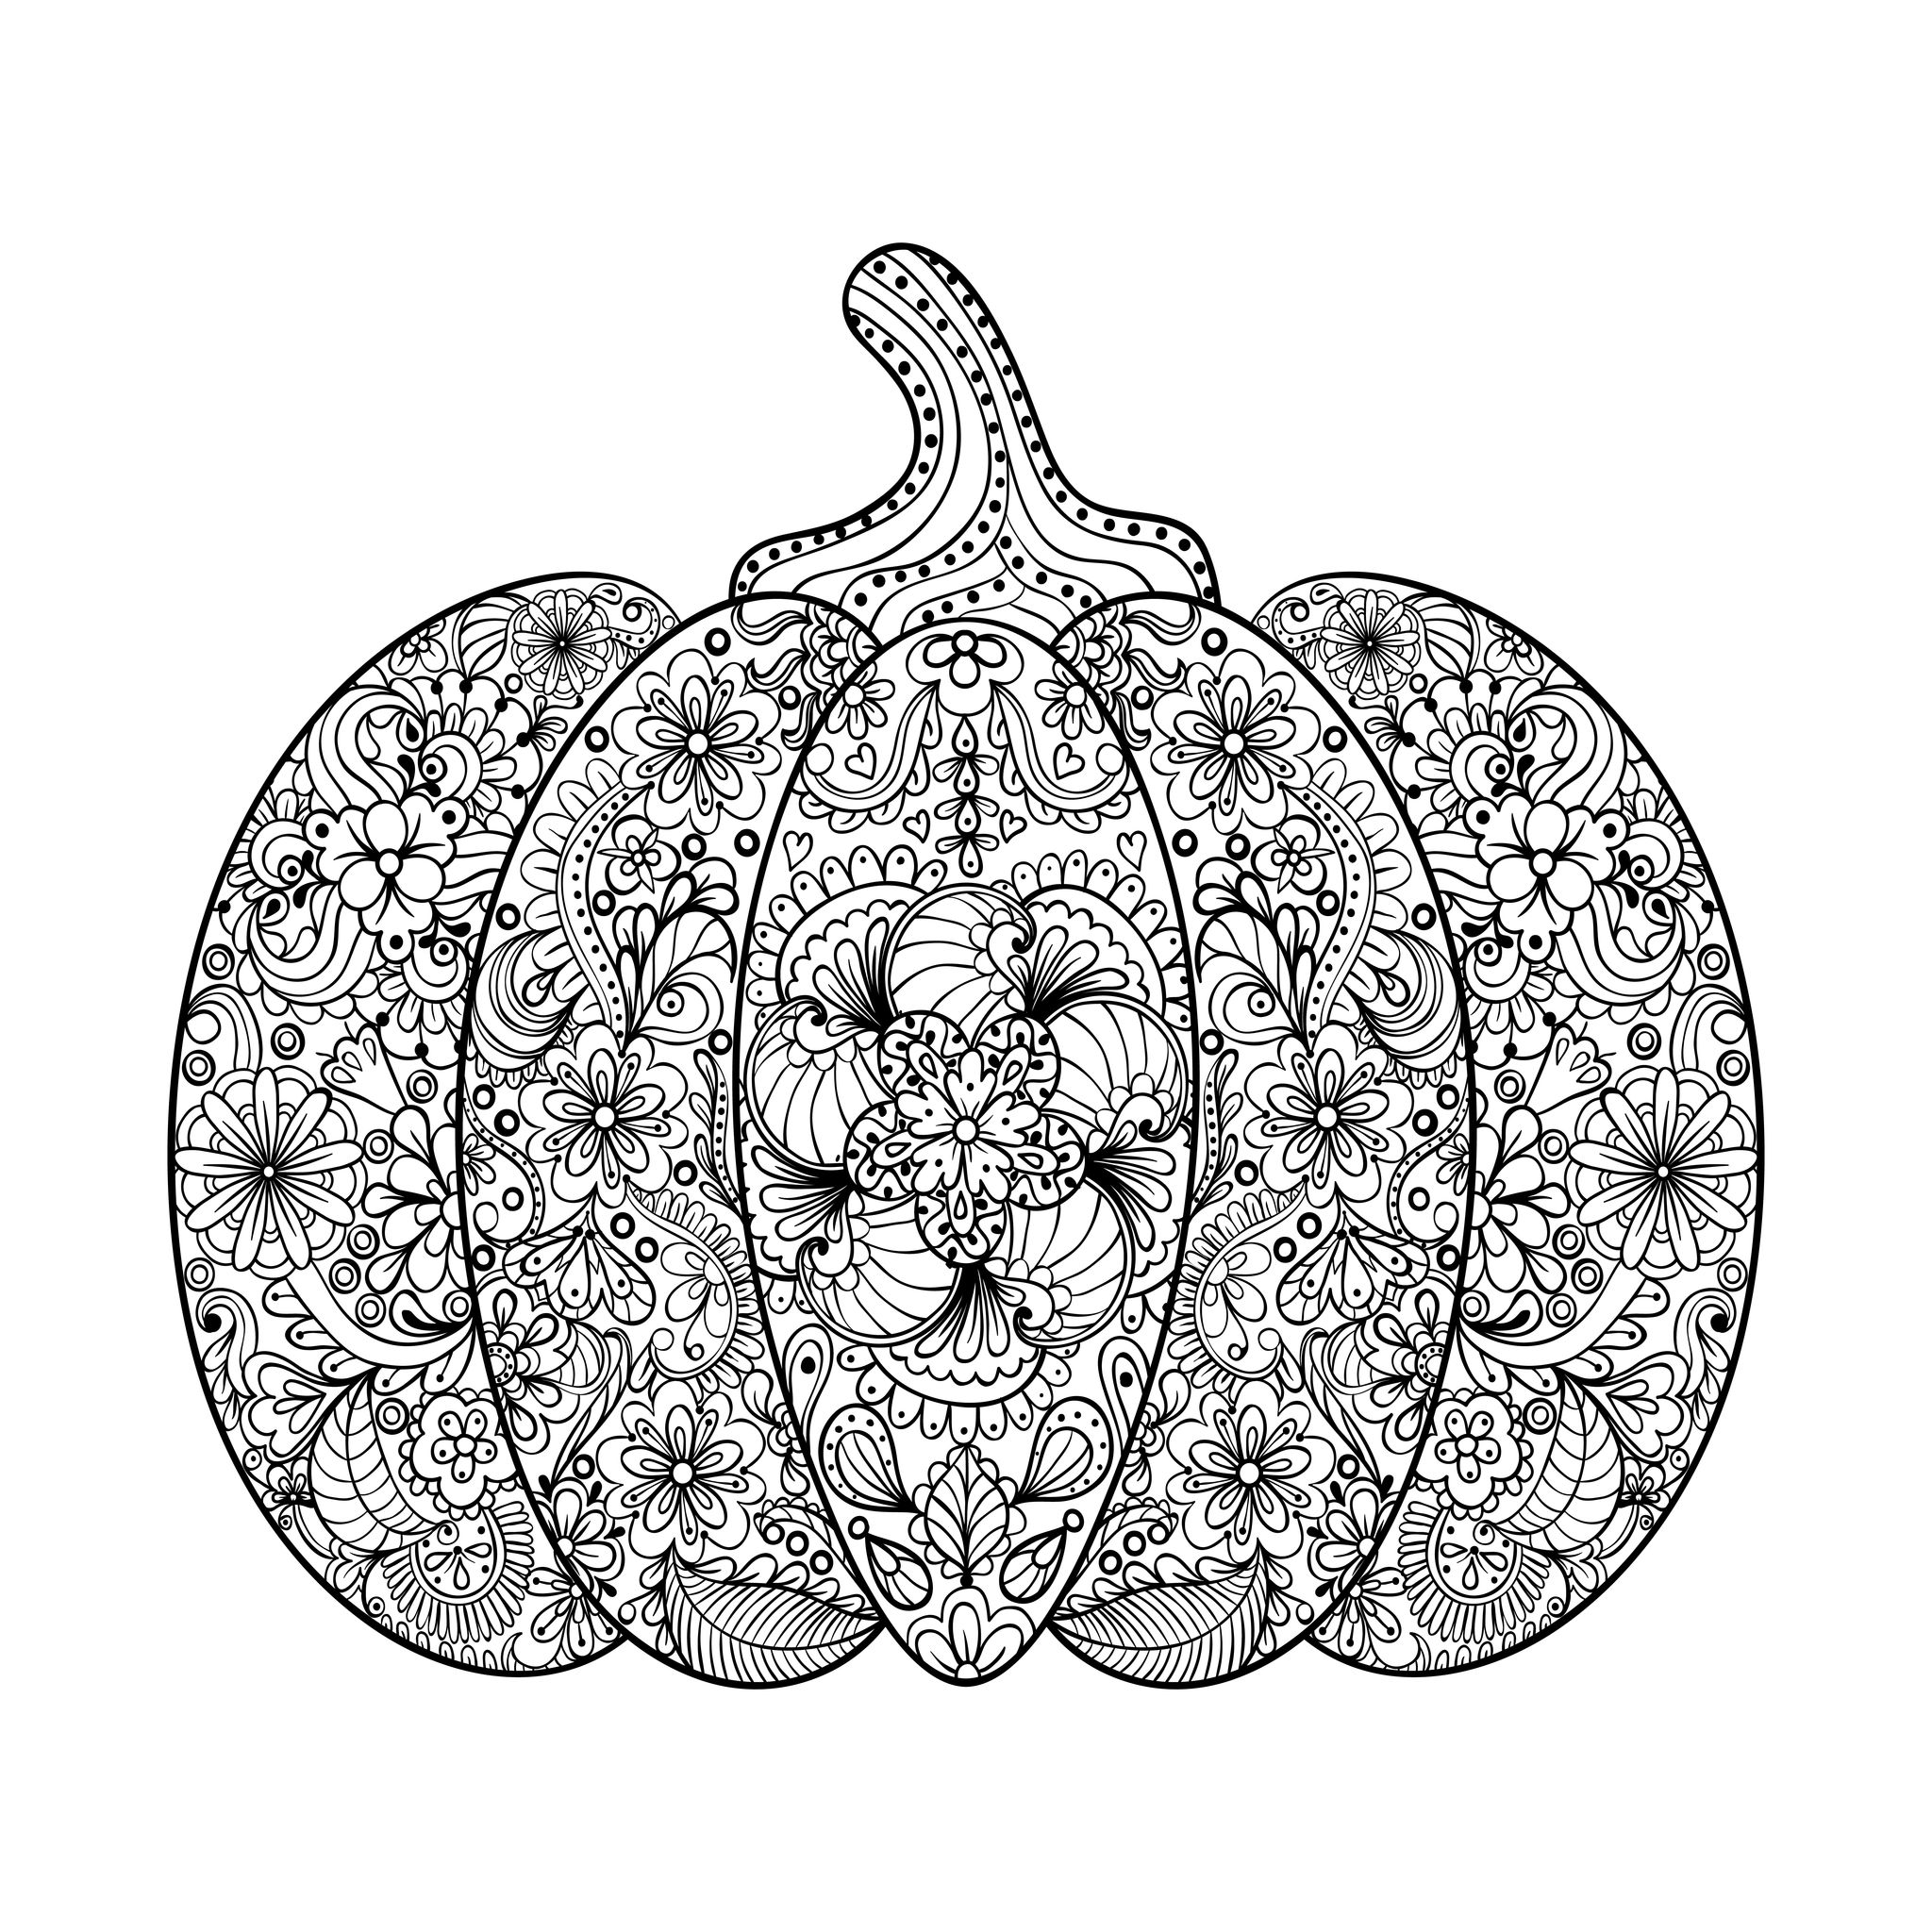 Halloween Coloring Pages Advanced : Halloween complex pumpkin with flowers and leaves by